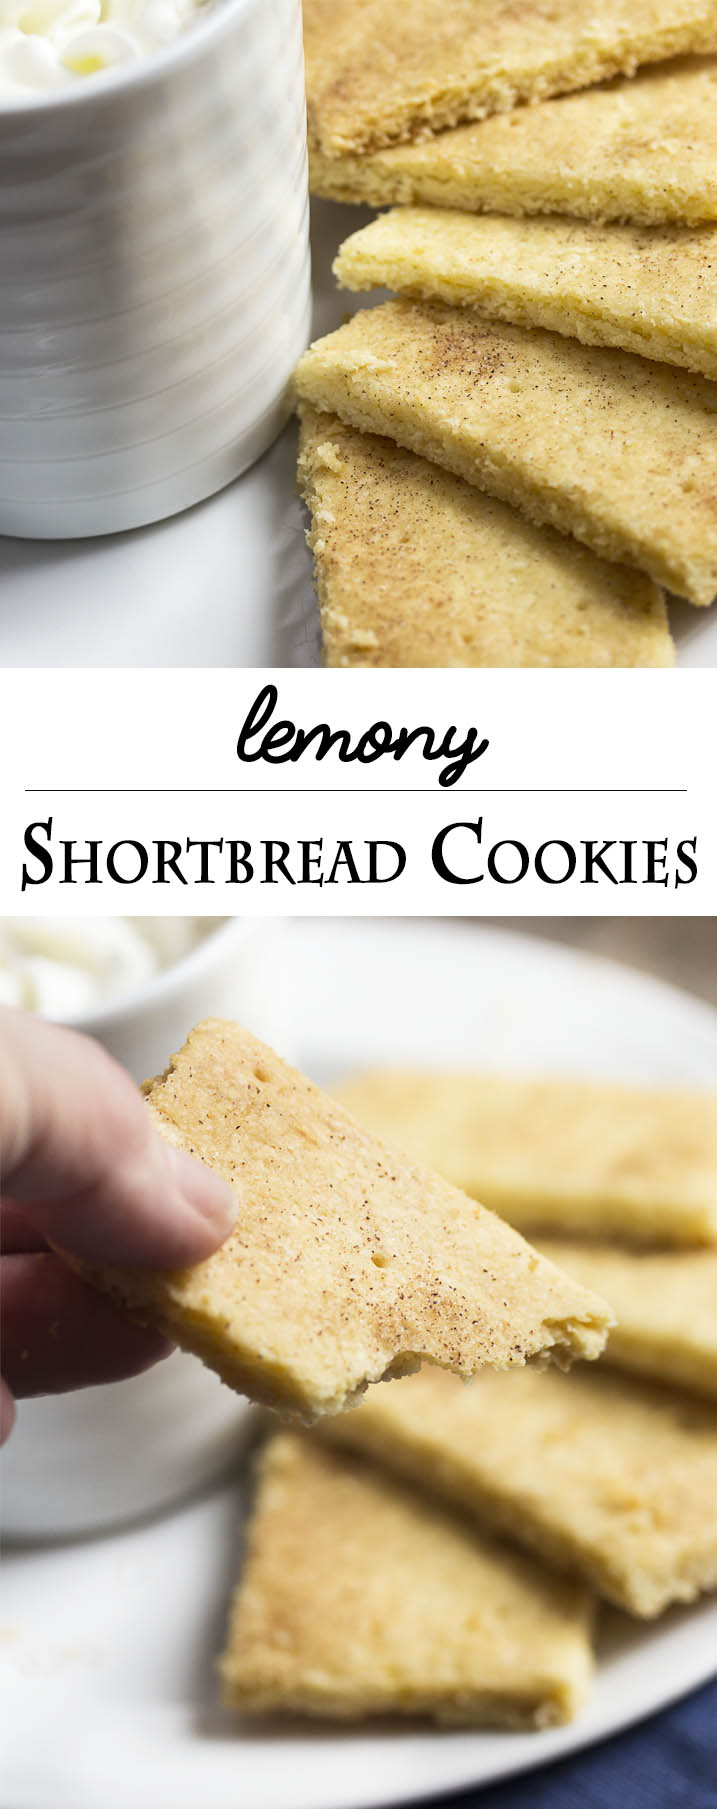 Lemony Shortbread Cookies - These lemon shortbread cookies are classic butter cookies with a tender, crumbly texture. So easy to roll out or press into your pan! They are great plain, topped with flavored sugar, or dipped in chocolate. | justalittlebitofbacon.com